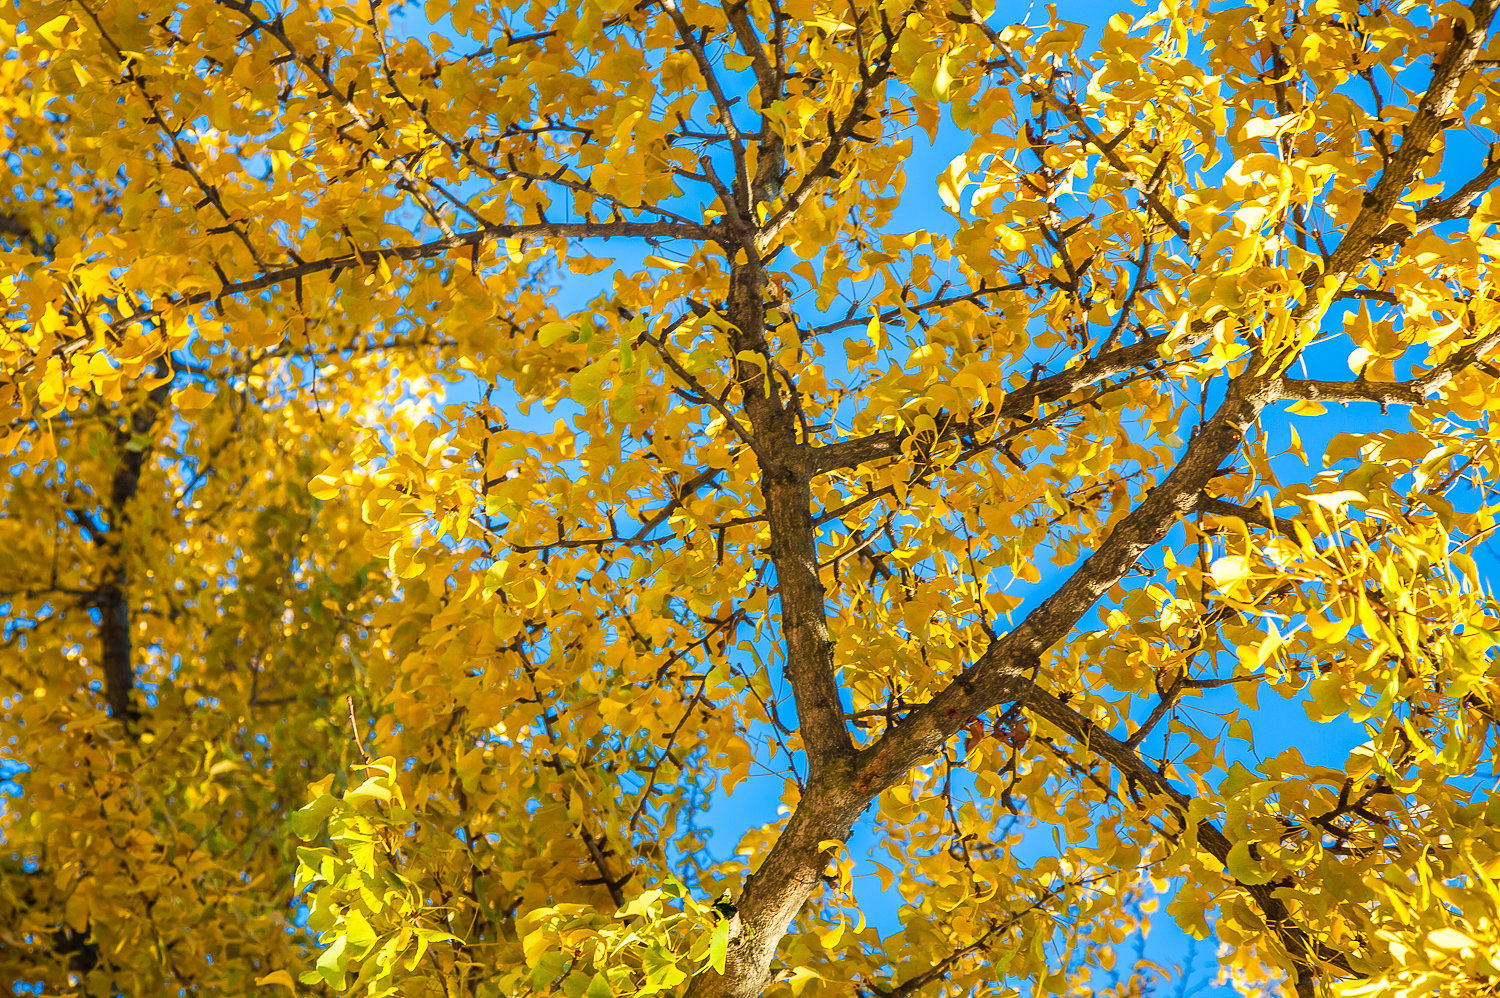 Why We Still Plant and Love the Ginkgo Tree